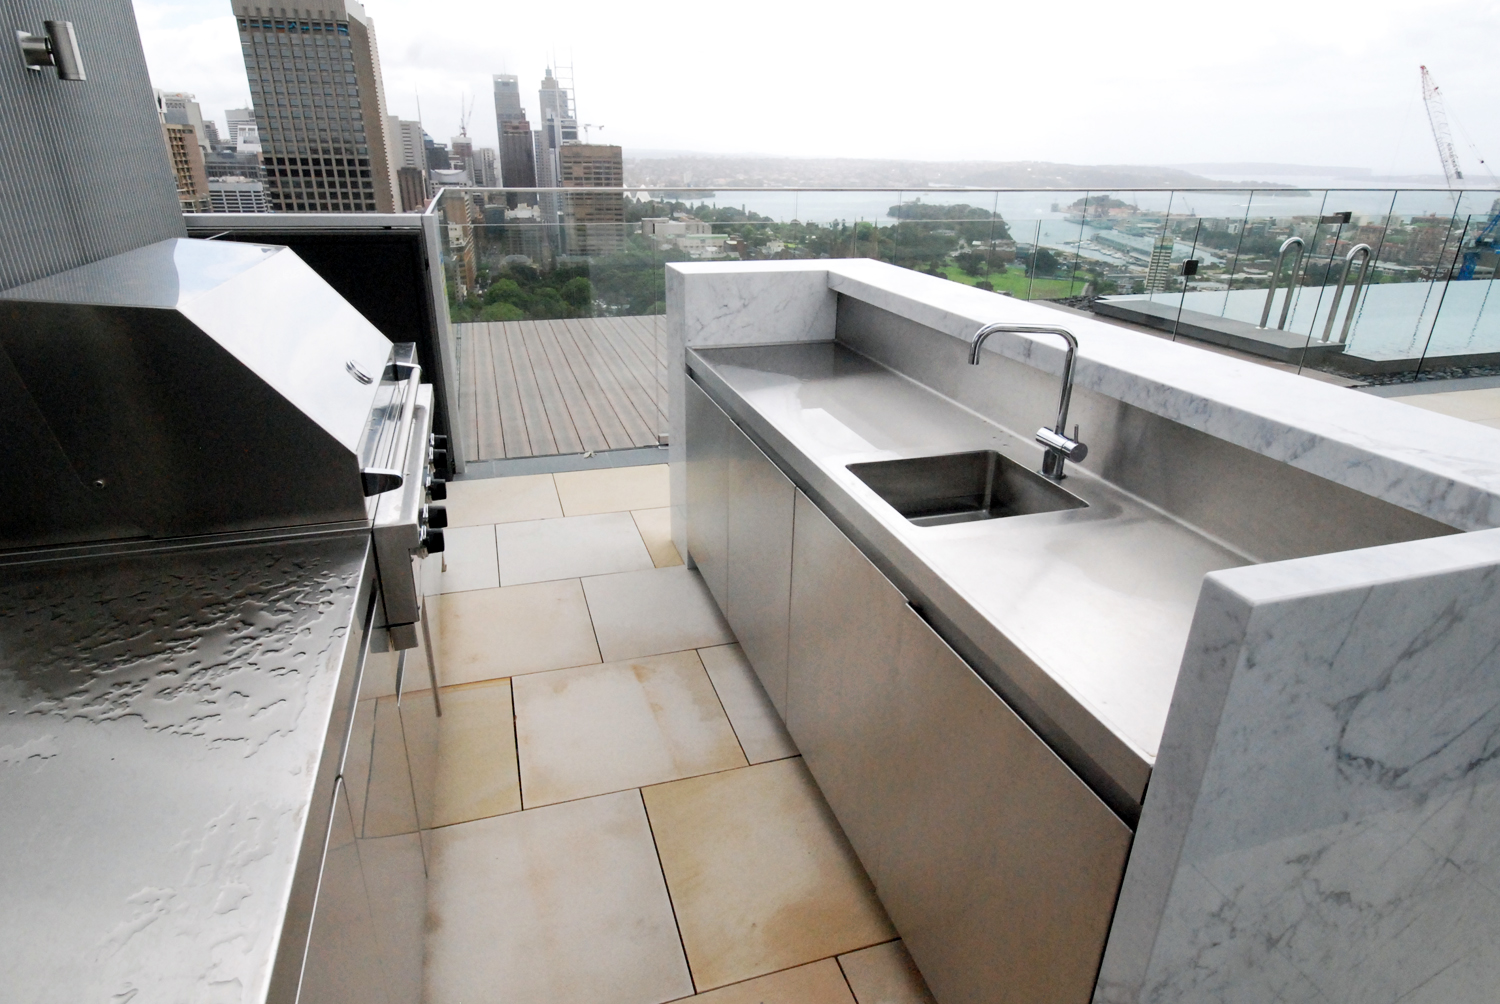 Residential stainless kitchens and benches